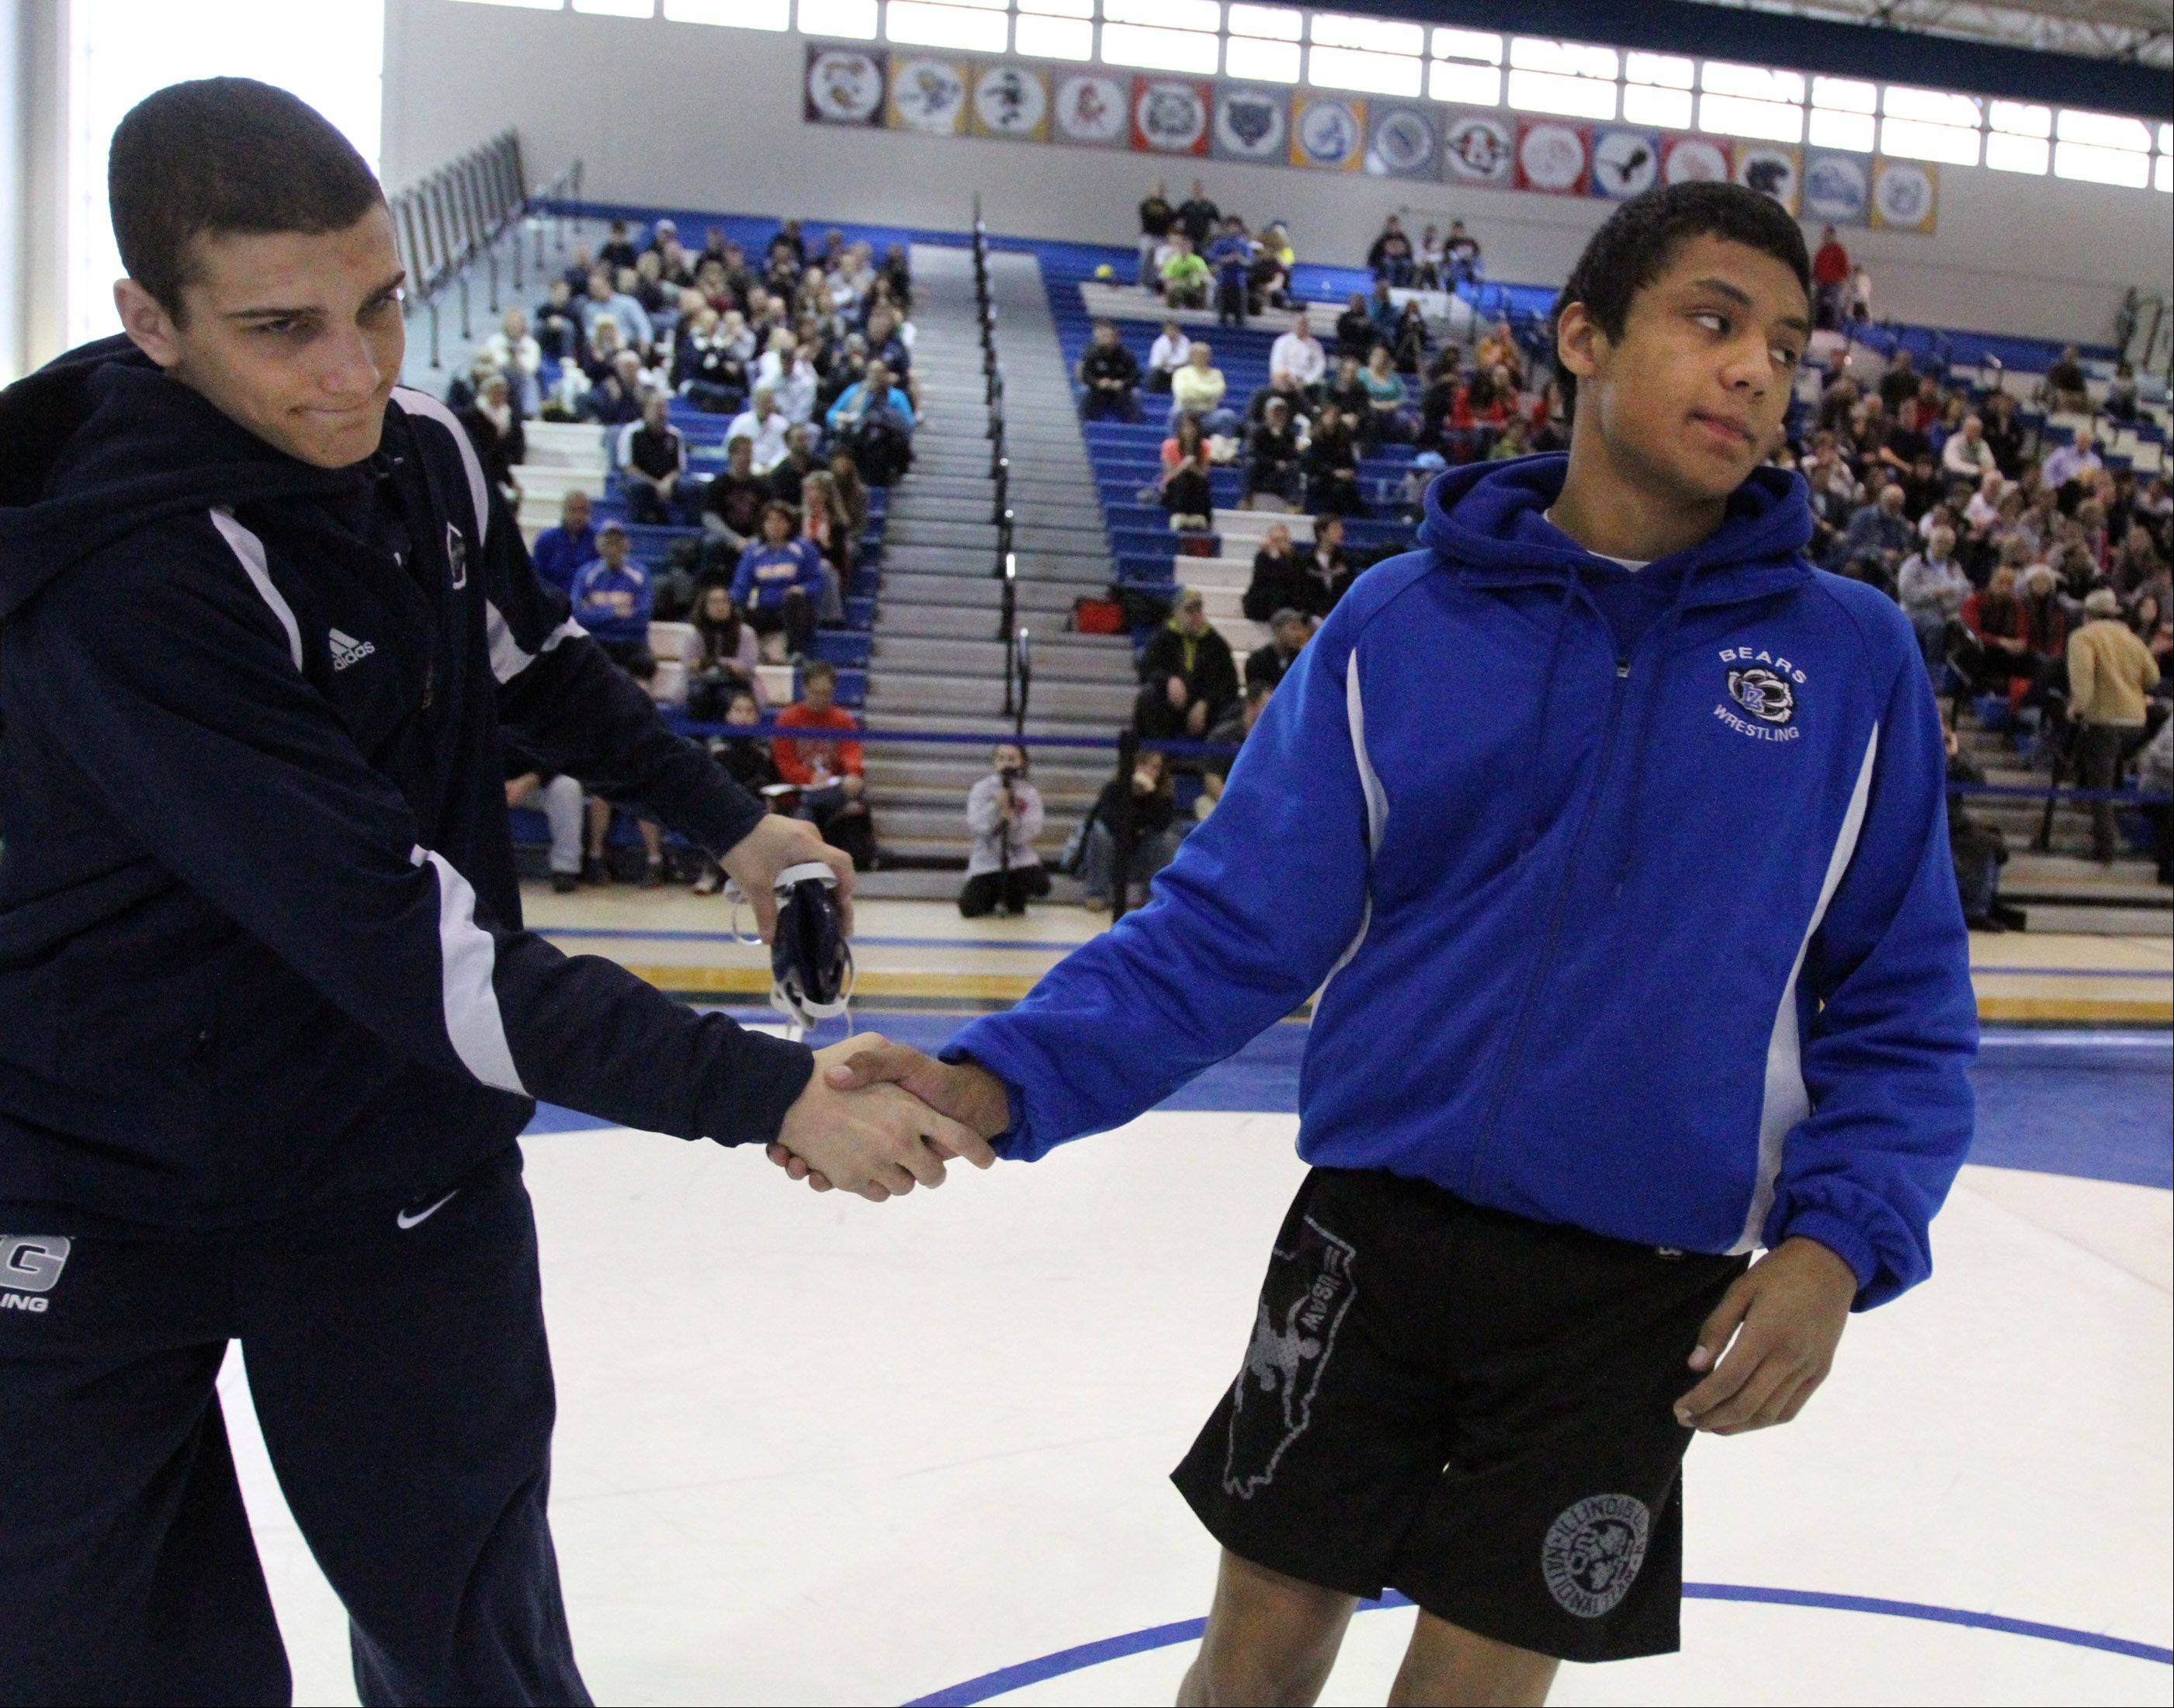 Cary-Grove's Michael Underwood, left, and Lake Zurich's Brandon Arteaga shake hands before the 138-pound championship match at the Class 3A regional at Lake Zurich on Saturday. Artega won the crown.